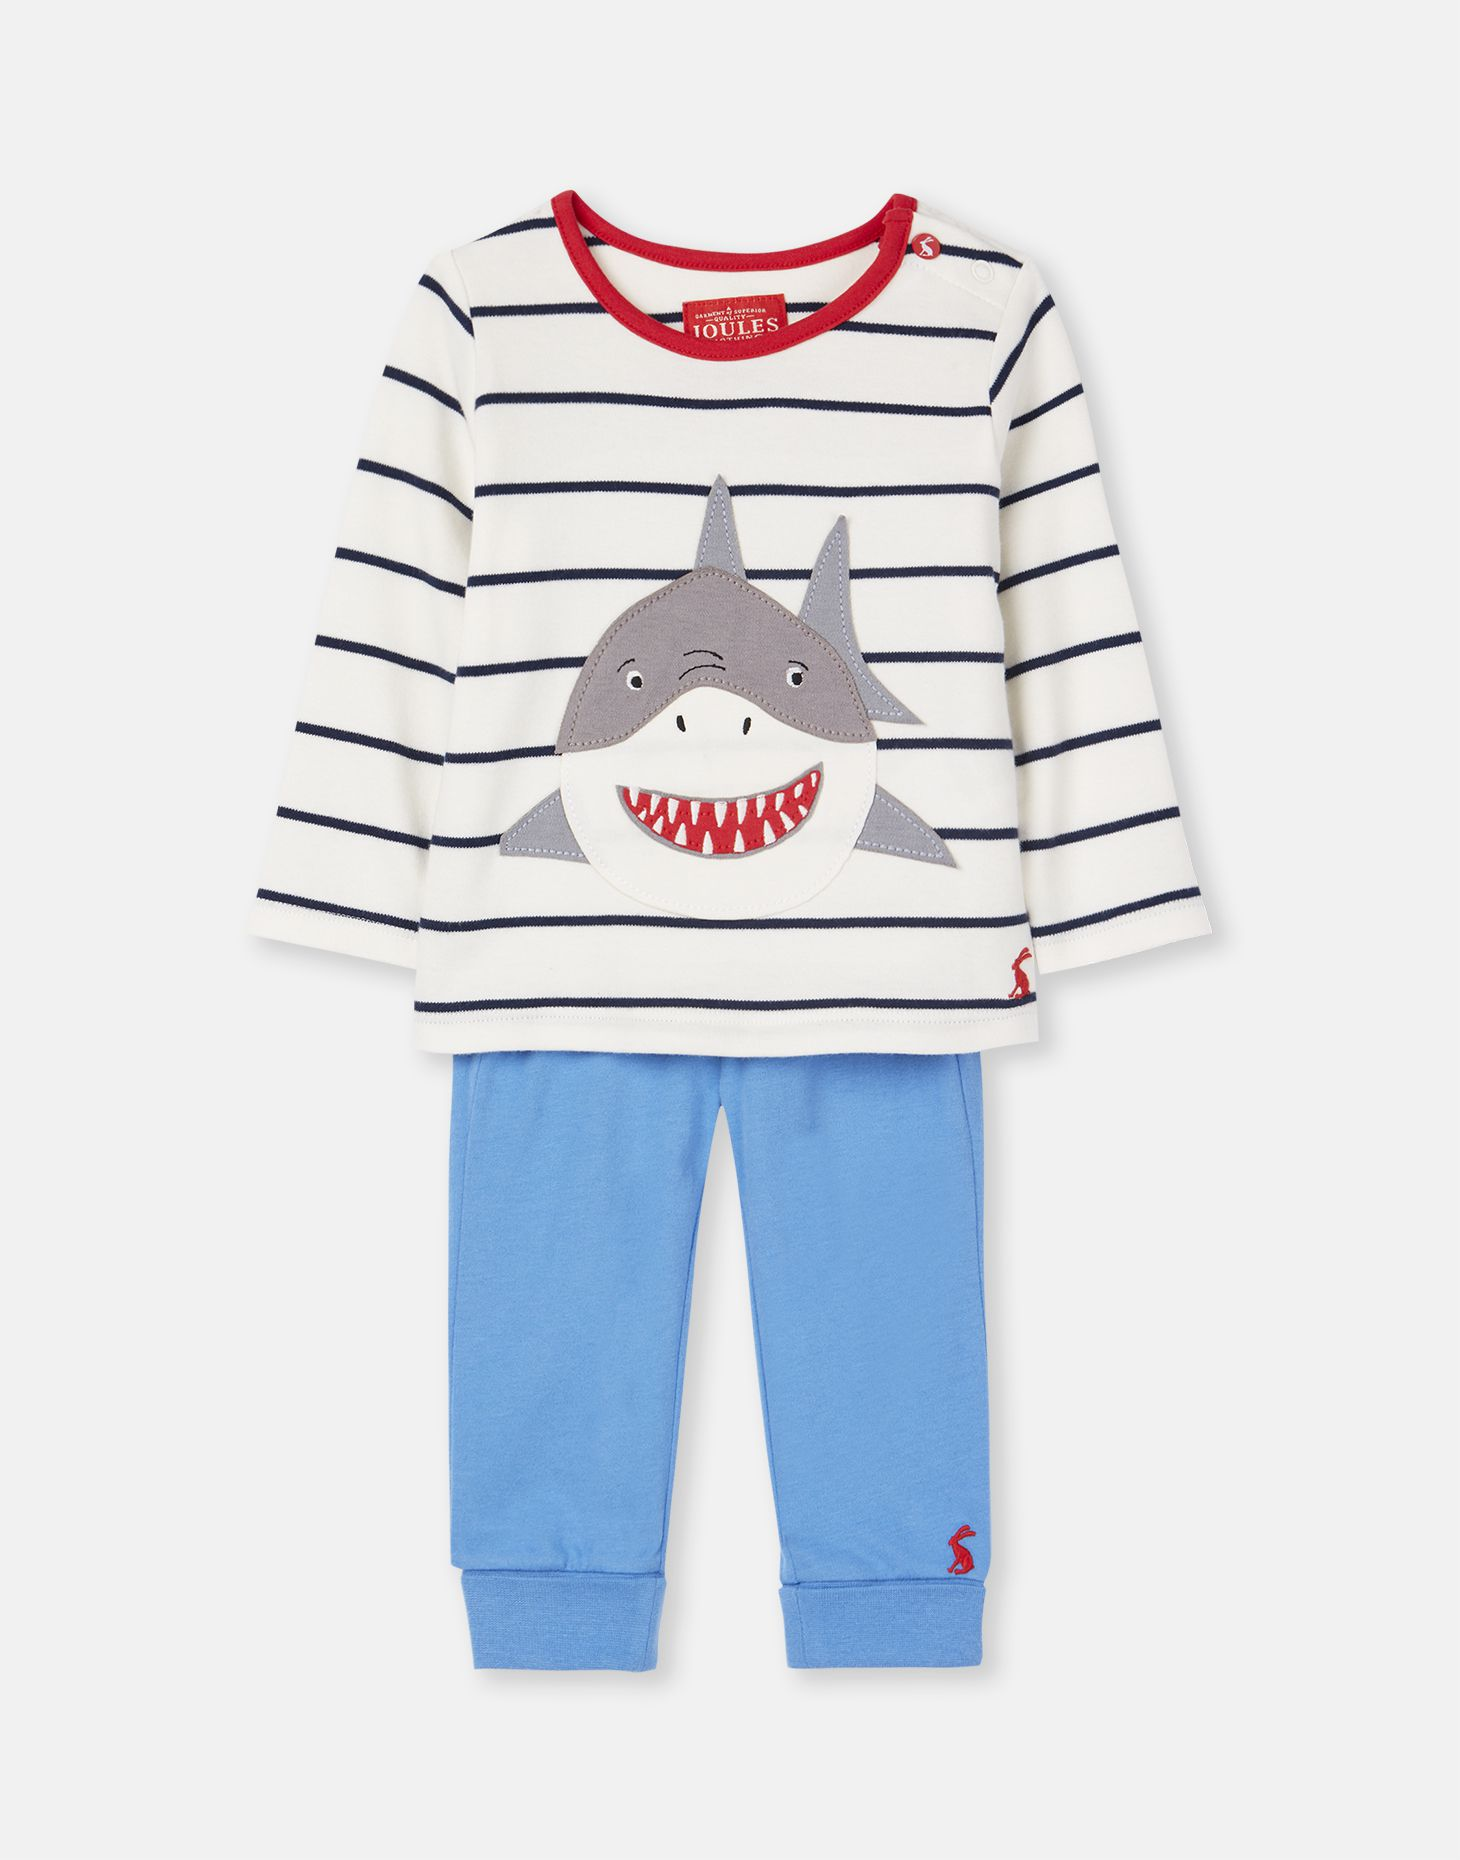 Joules Baby 203984 Top And Joggers Set in FRENCH NAVY